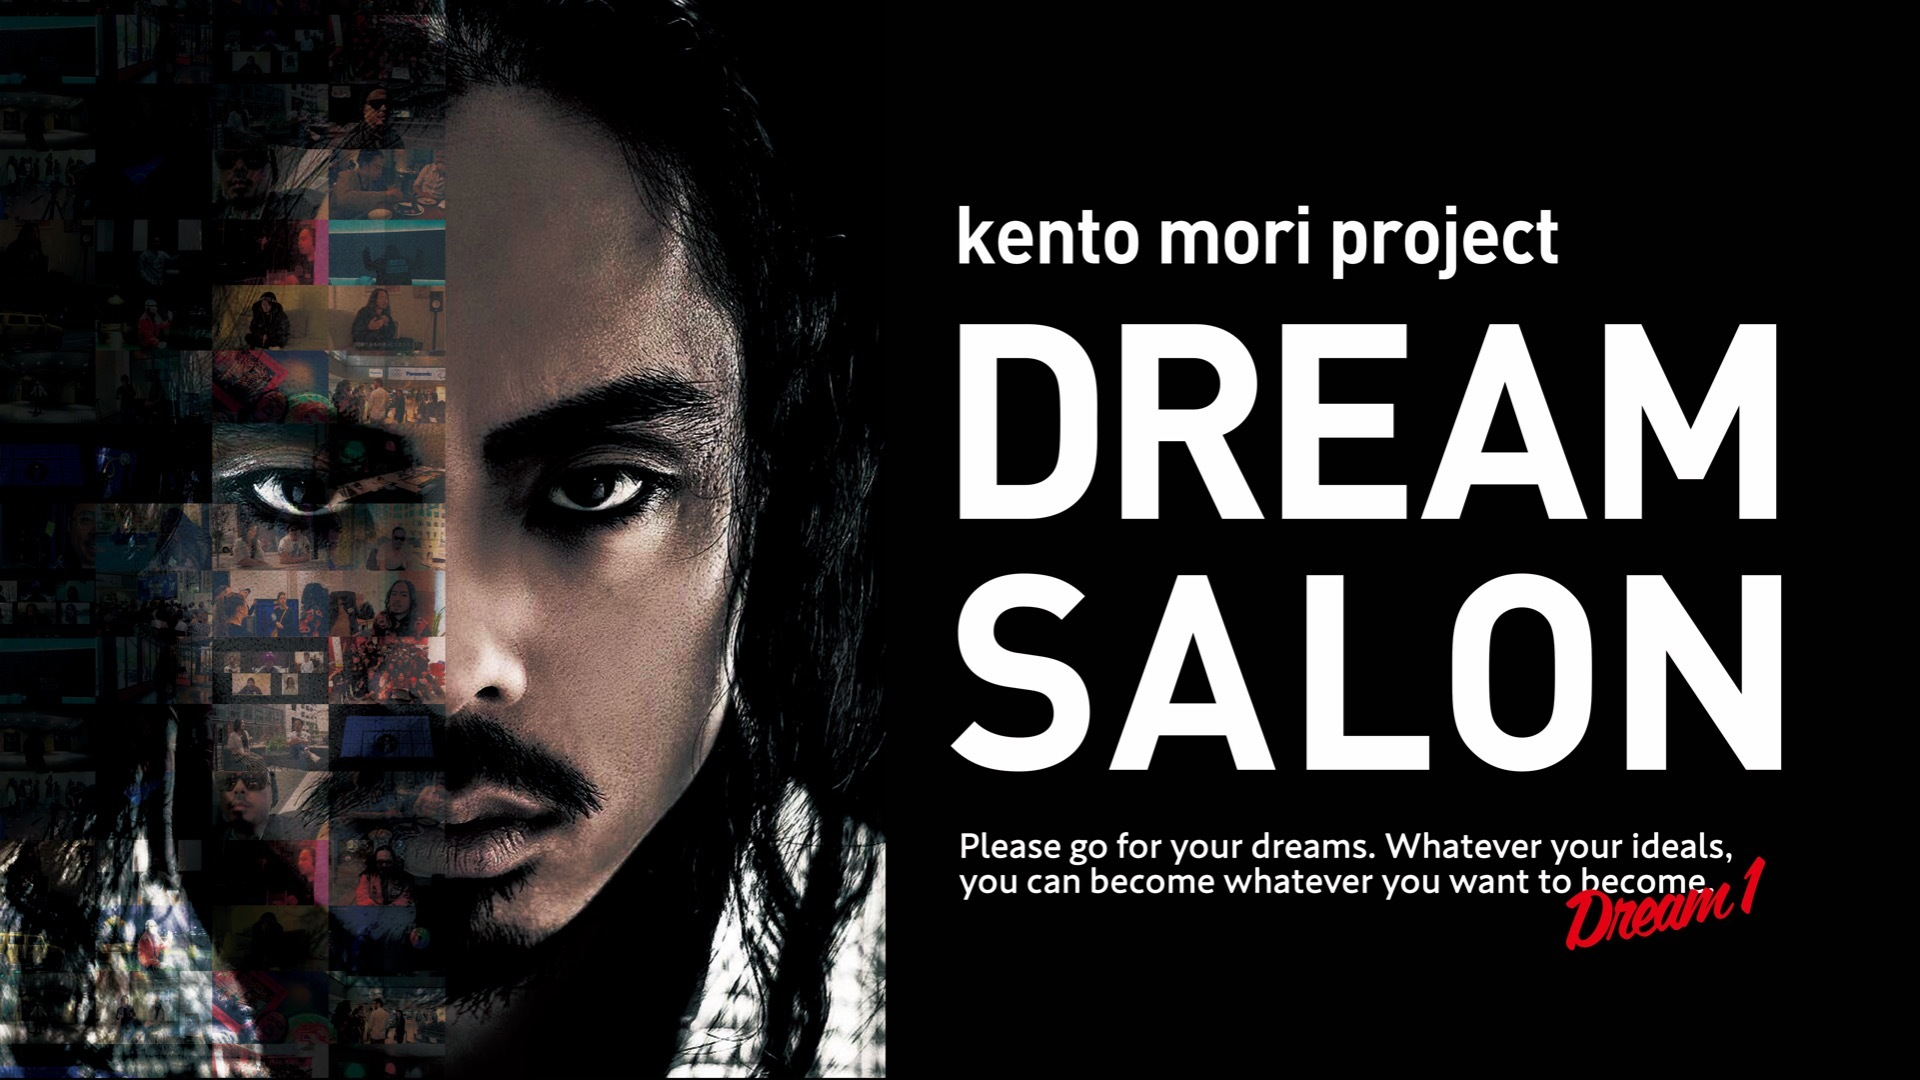 Kento Mori Dream Salon